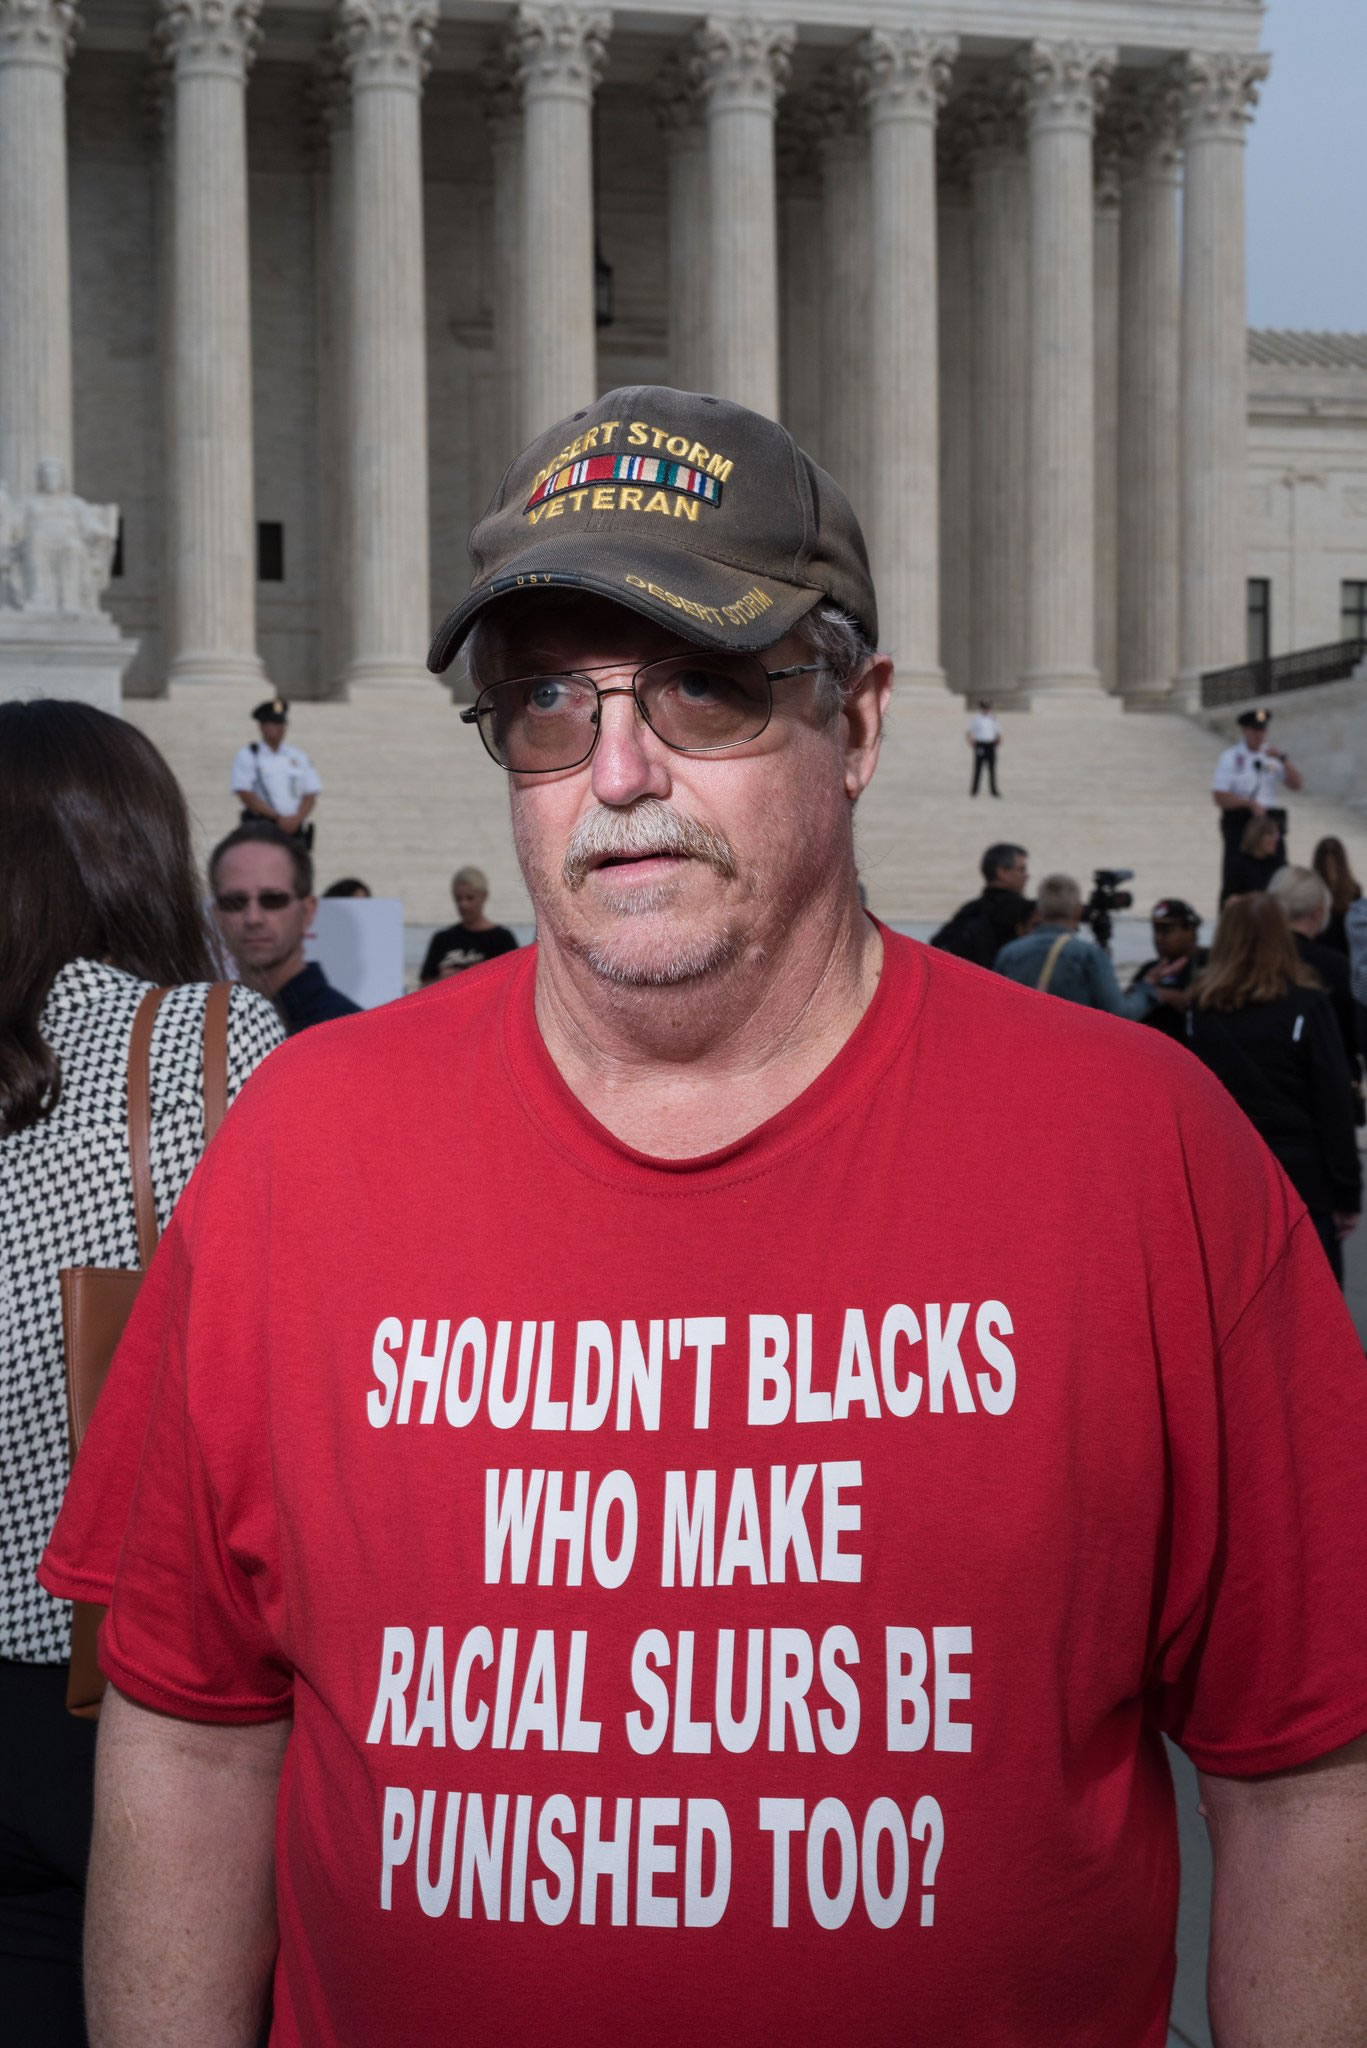 Kavanaugh supporter wearing a red t-shirt with the slogan 'Shouldn't blacks who make racial slurs be punshed too?'